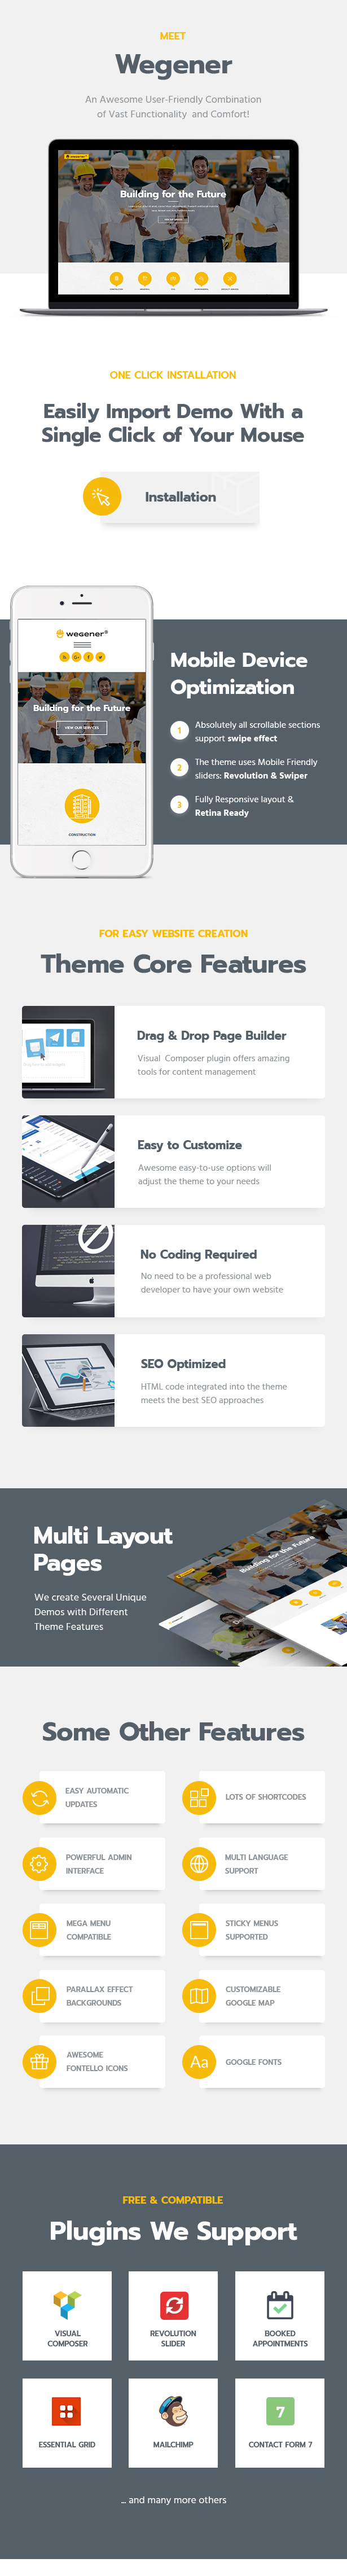 Wegener | Construction & Engineering WordPress Theme - 2